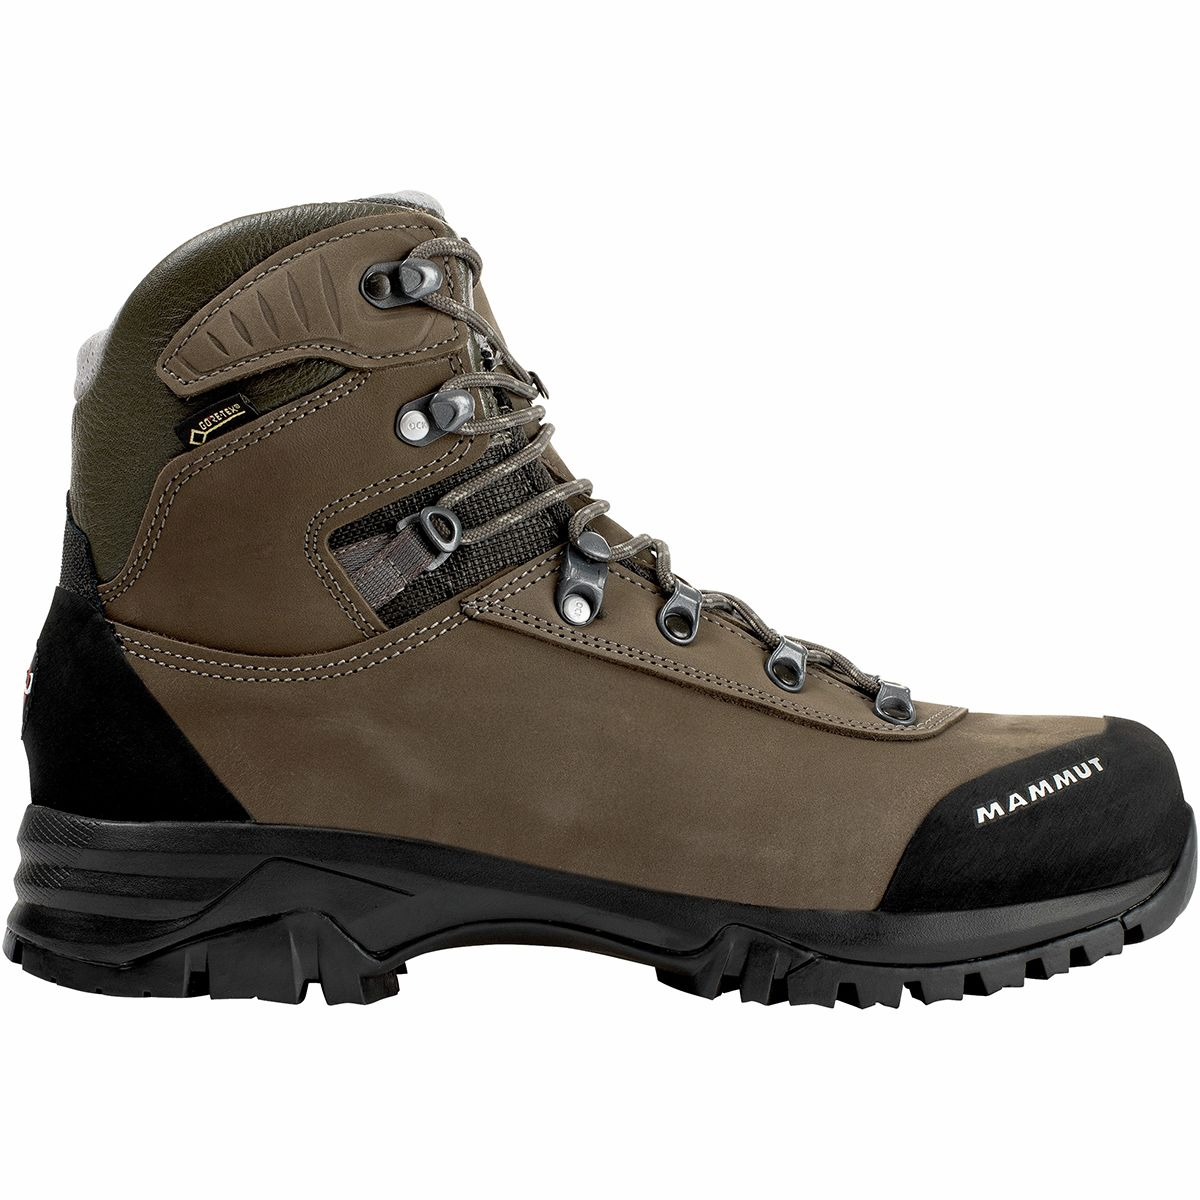 Mammut Trovat Advanced High GTX